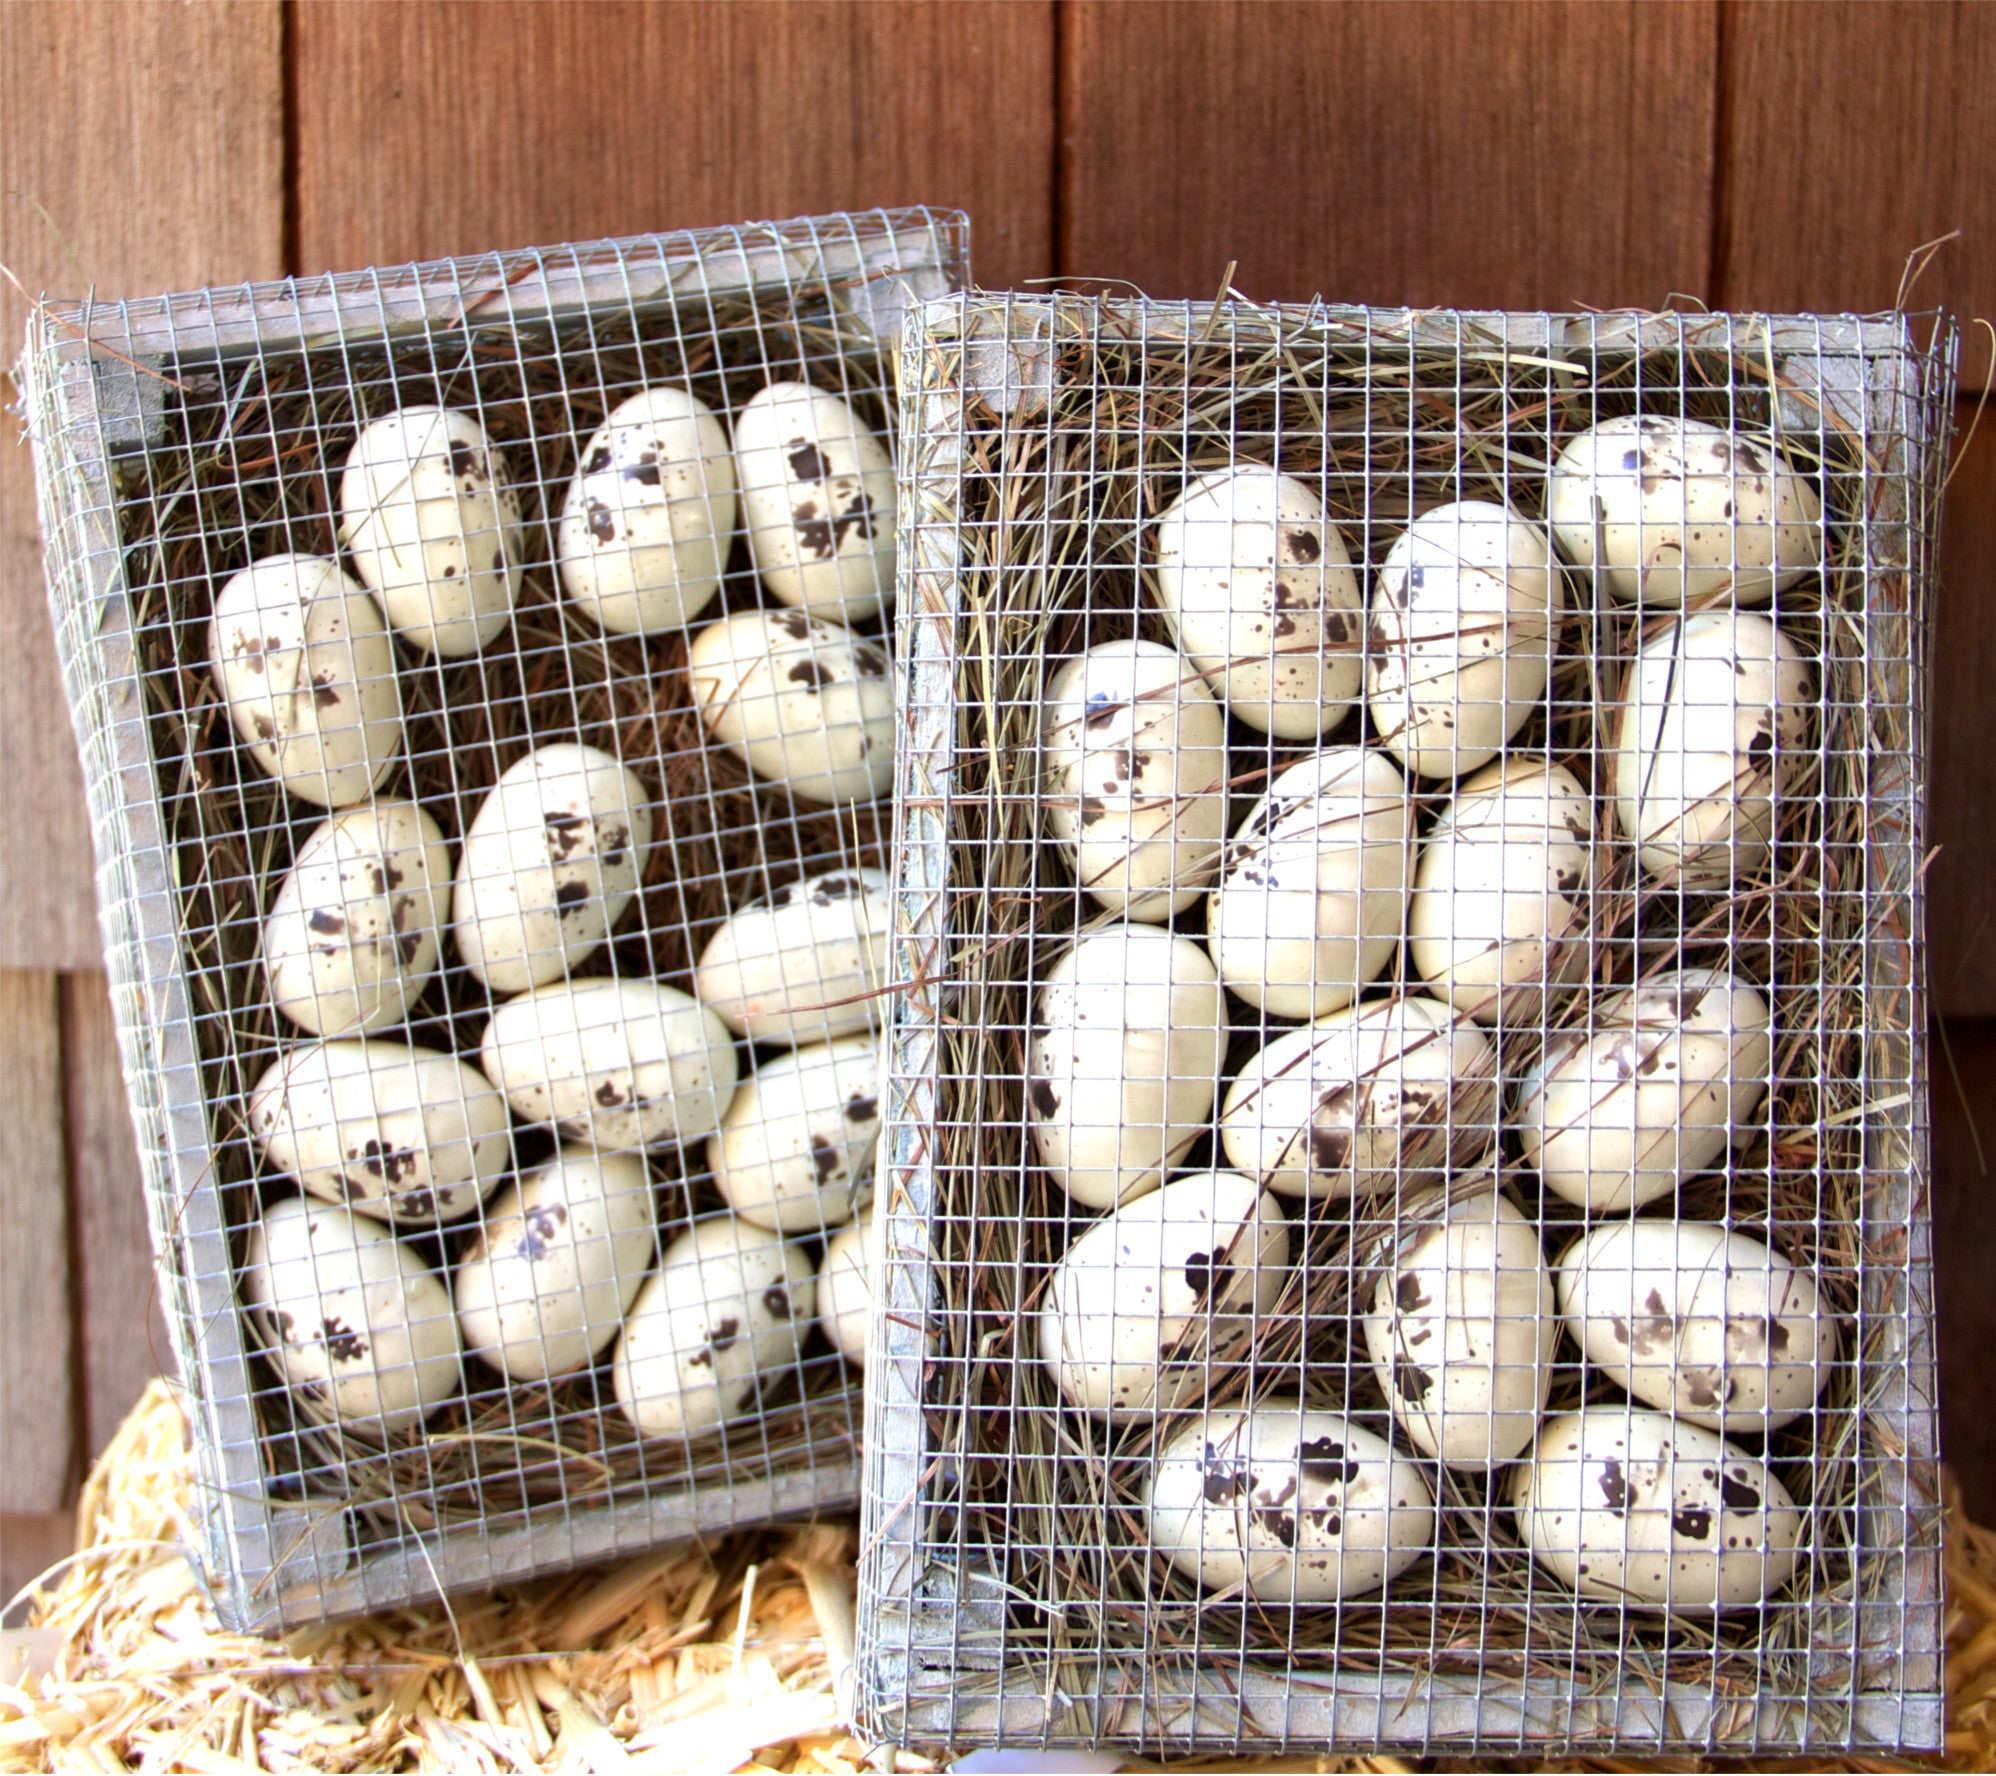 Egg Crate with Speckled Eggs | Farmhouse Decoration